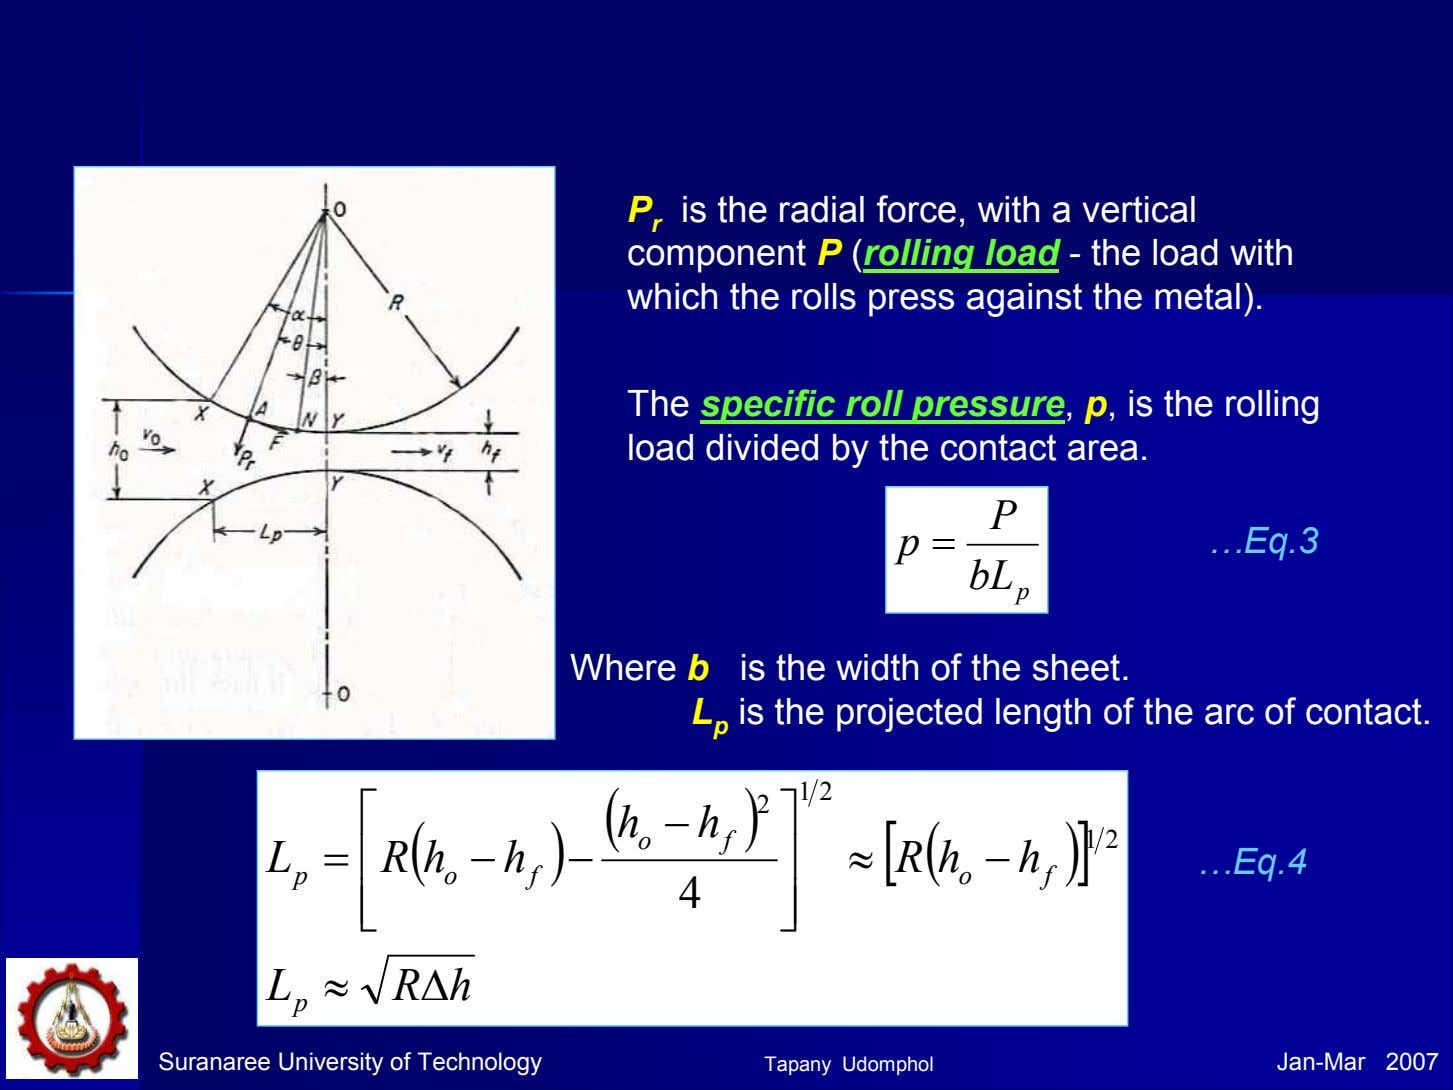 P r is the radial force, with a vertical component P (rolling load - the